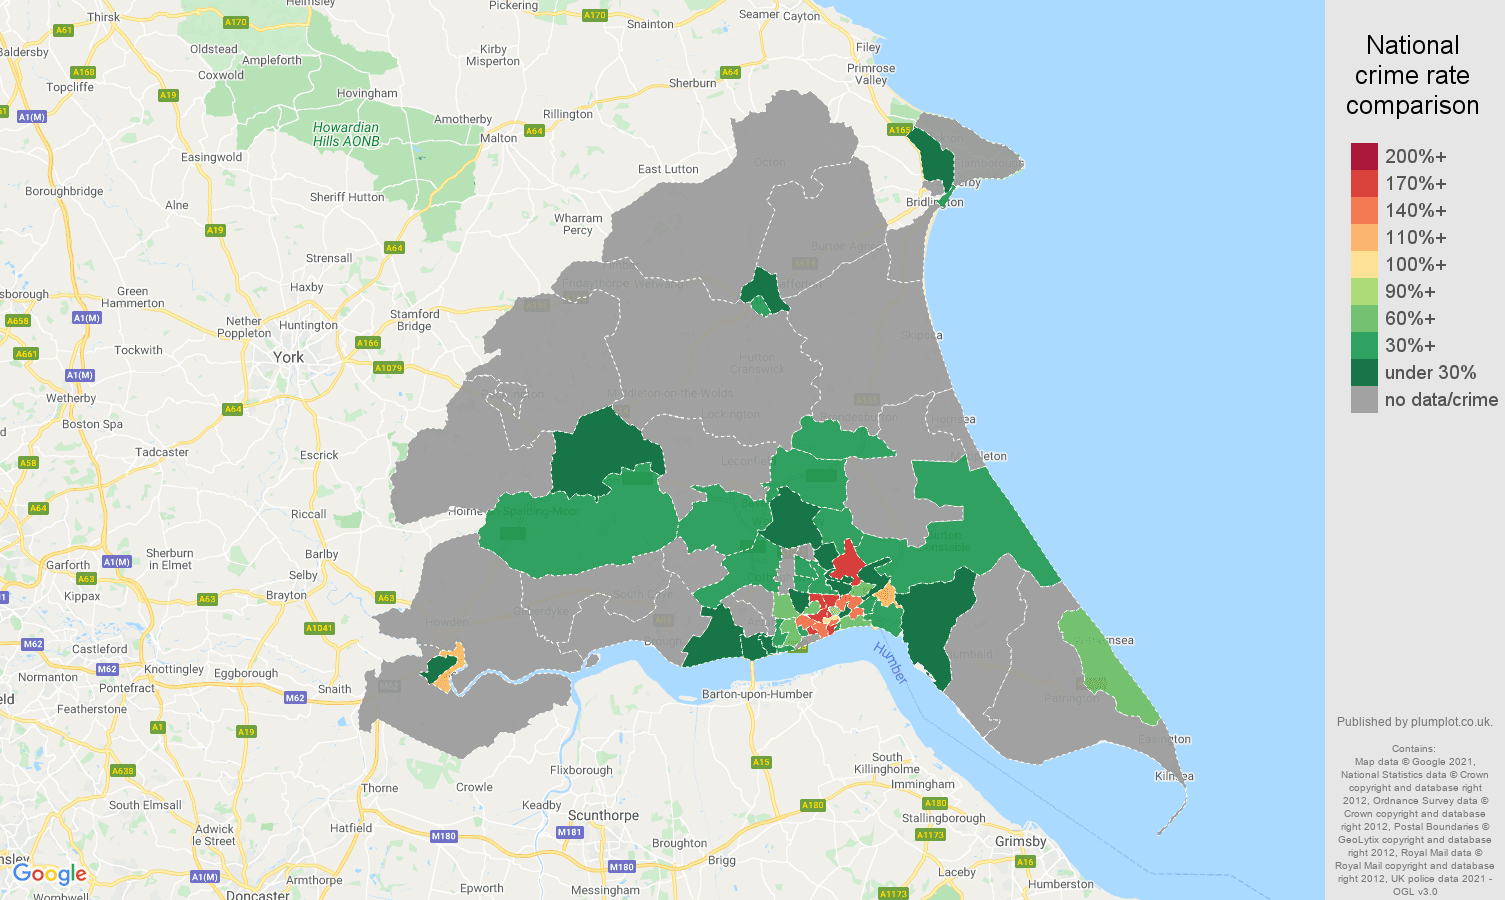 East Riding of Yorkshire robbery crime rate comparison map